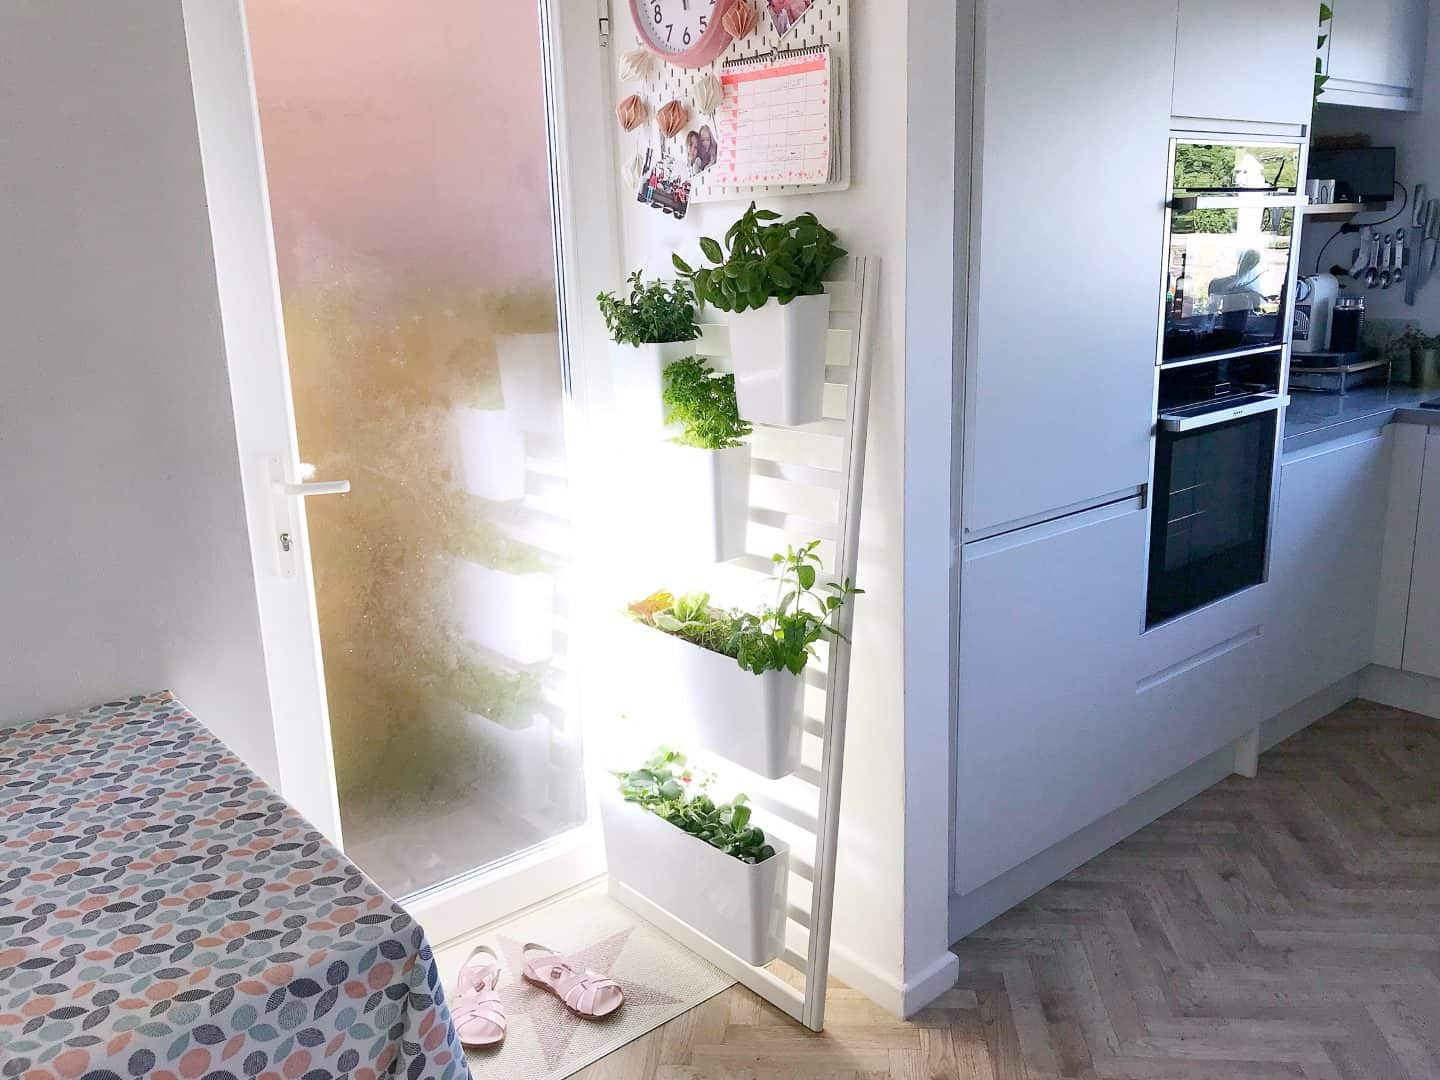 How to Upcycle a Cot Side Into an Indoor Salad Garden